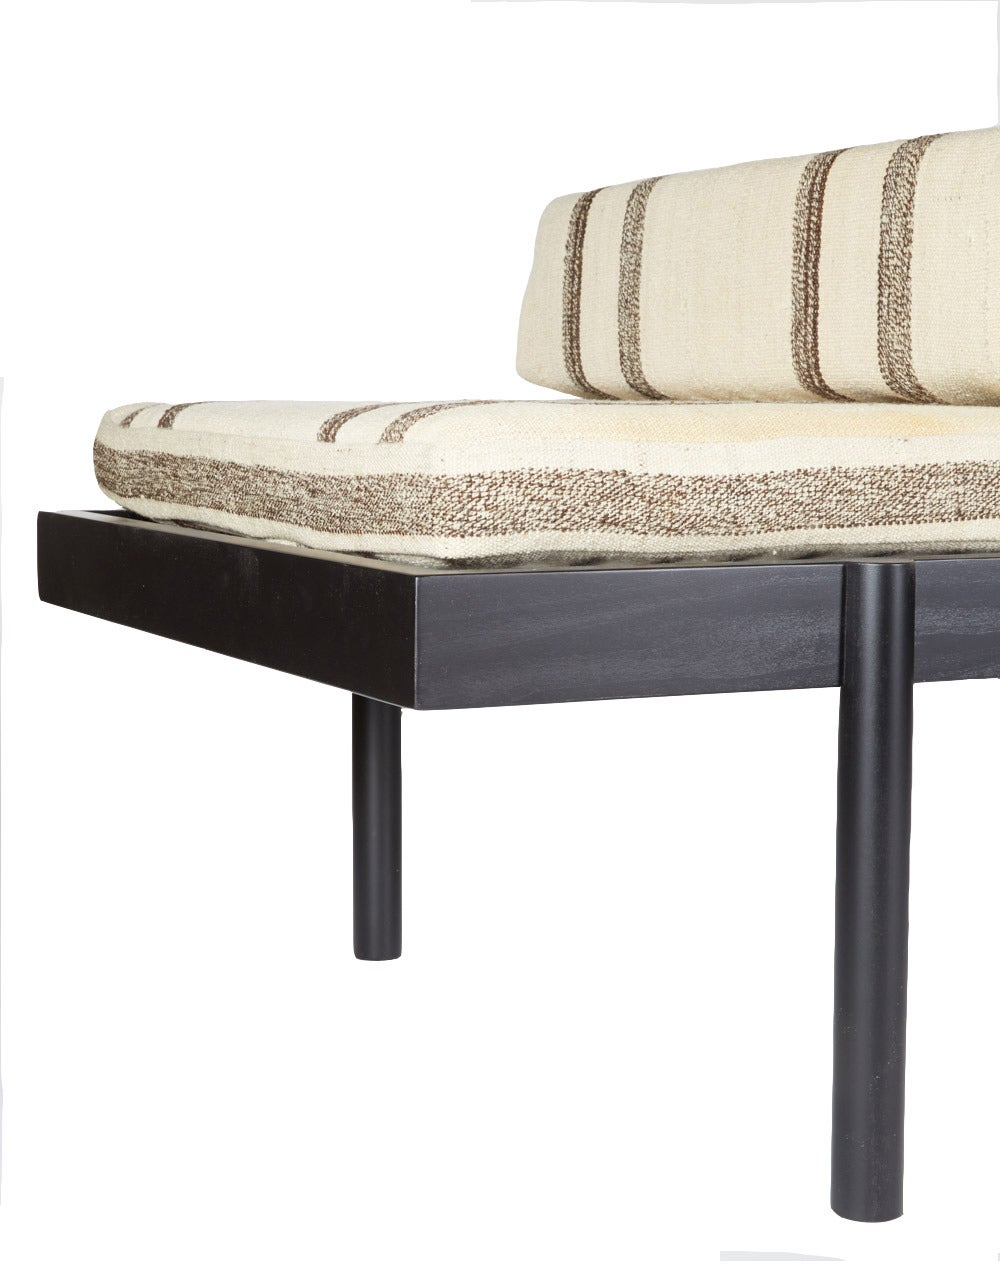 WC2 Daybed by ASH NYC with Limited Woven Accents Kilim Upholstery, One of Five 7